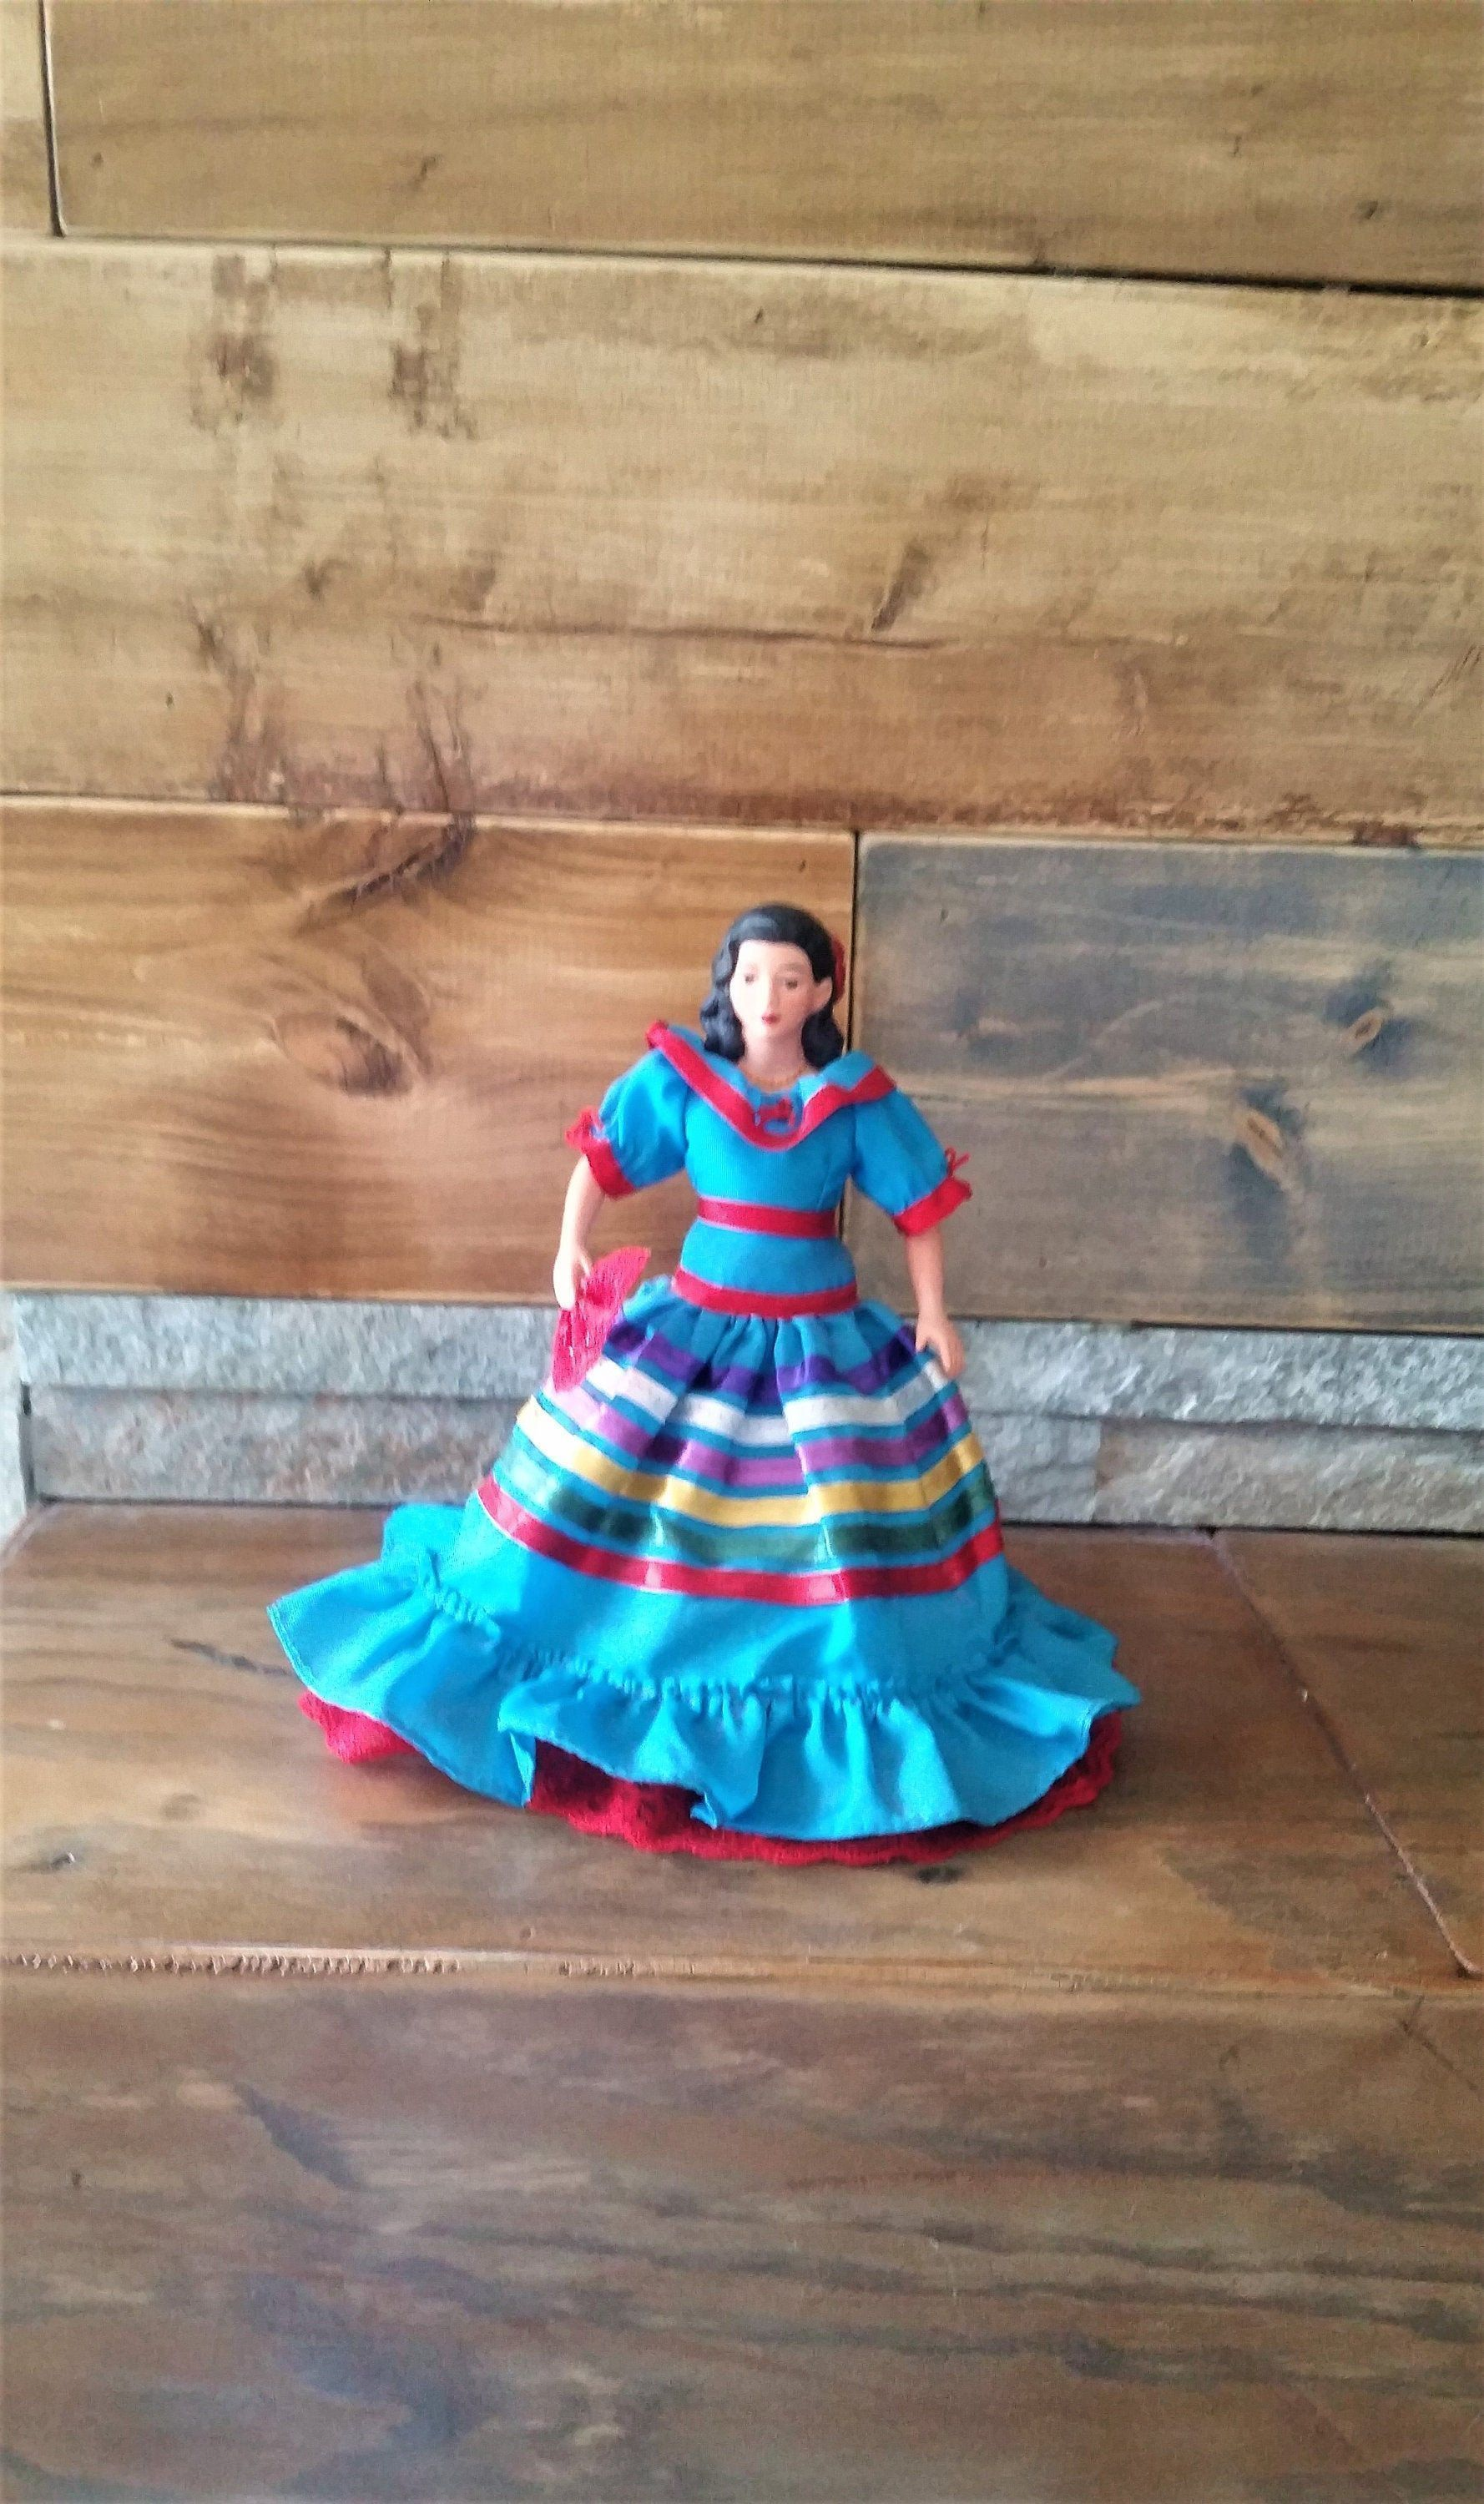 Vintage 1980's Spanish Flamenco dancer doll - traditional dressed doll - colourful vintage Spanish doll with stand - ceramic/plastic doll #spanishdolls Vintage 1980's Spanish Flamenco dancer doll - traditional dressed doll - colourful vintage Spanish doll with stand - ceramic/plastic doll #spanishdolls Vintage 1980's Spanish Flamenco dancer doll - traditional dressed doll - colourful vintage Spanish doll with stand - ceramic/plastic doll #spanishdolls Vintage 1980's Spanish Flamenco dancer doll #spanishdolls